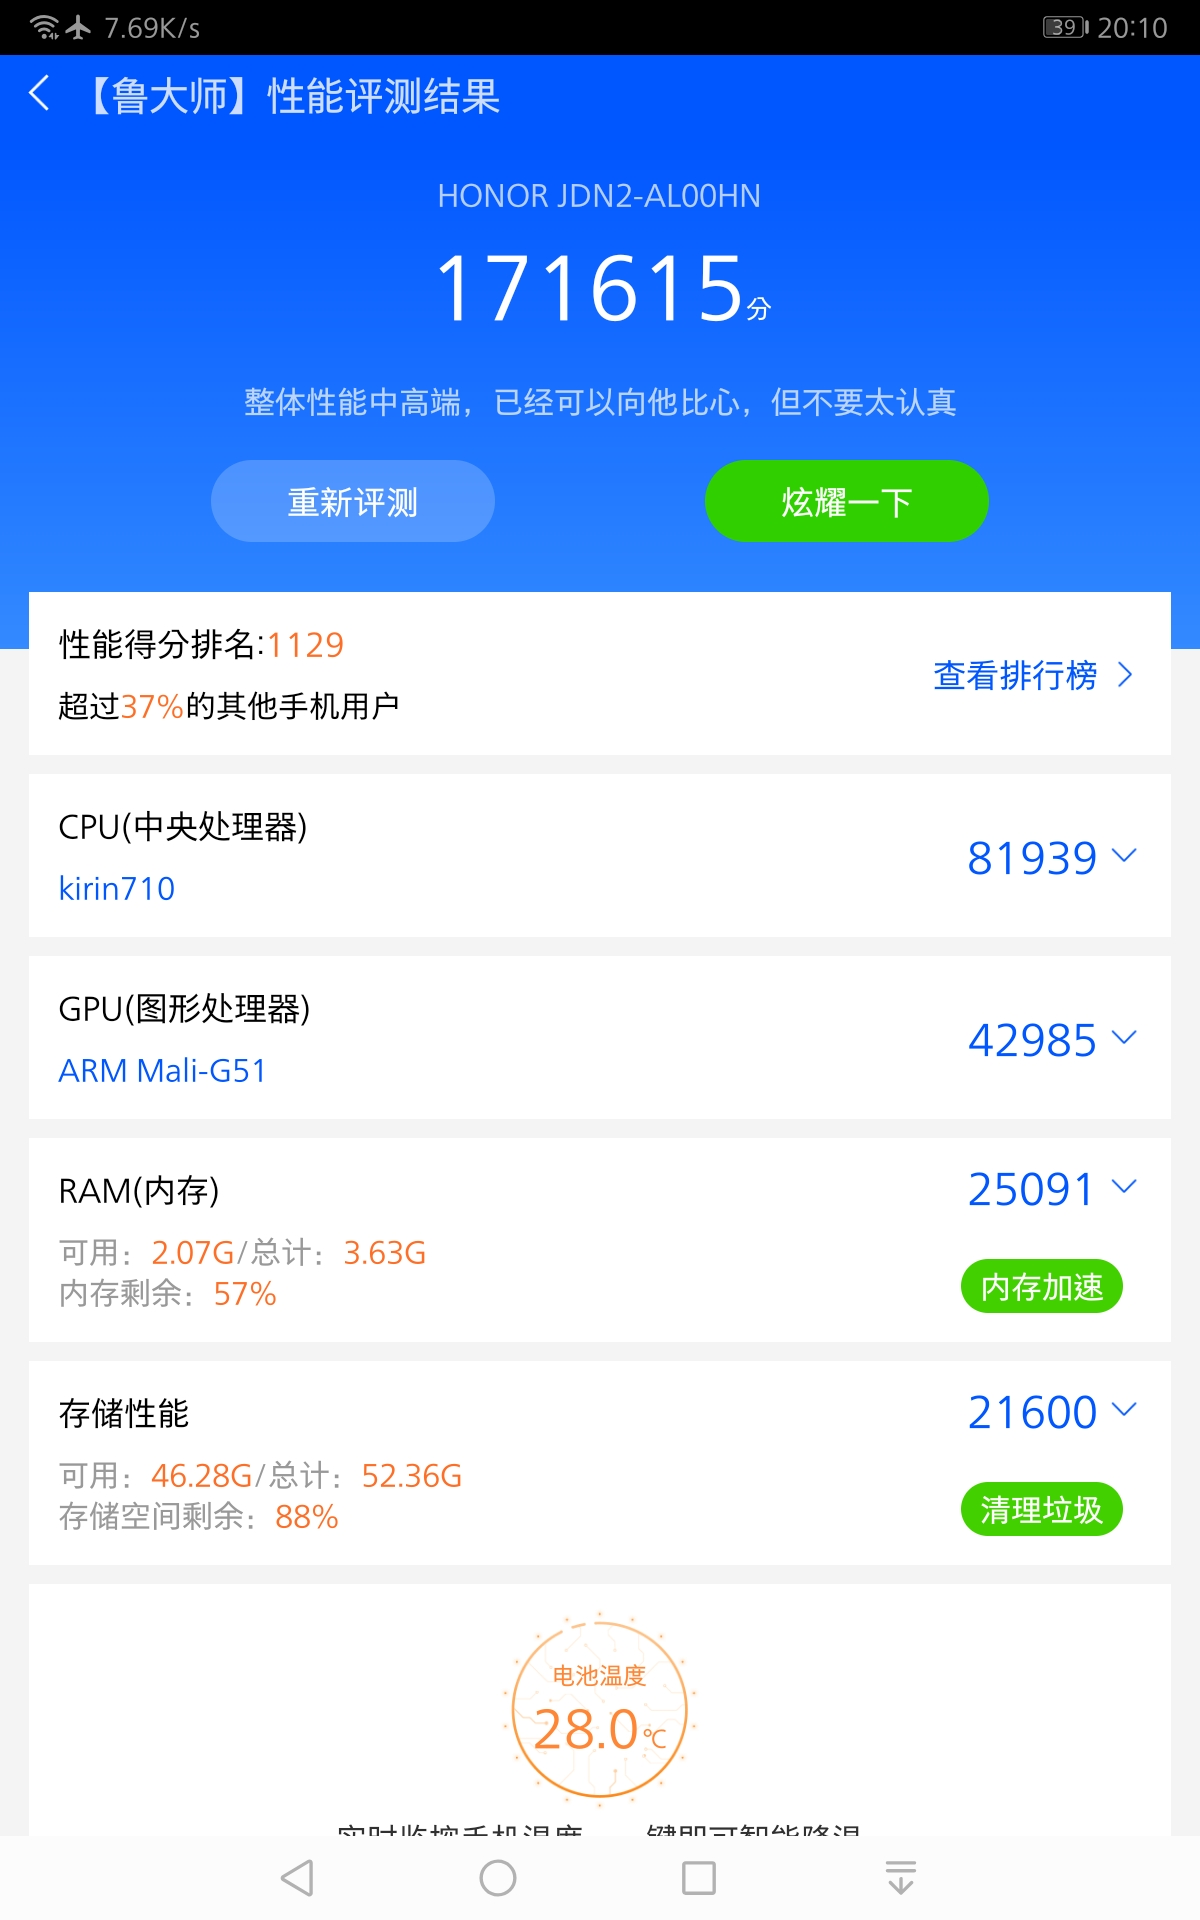 Screenshot_20190324_201040_com.ludashi.benchmark.jpg